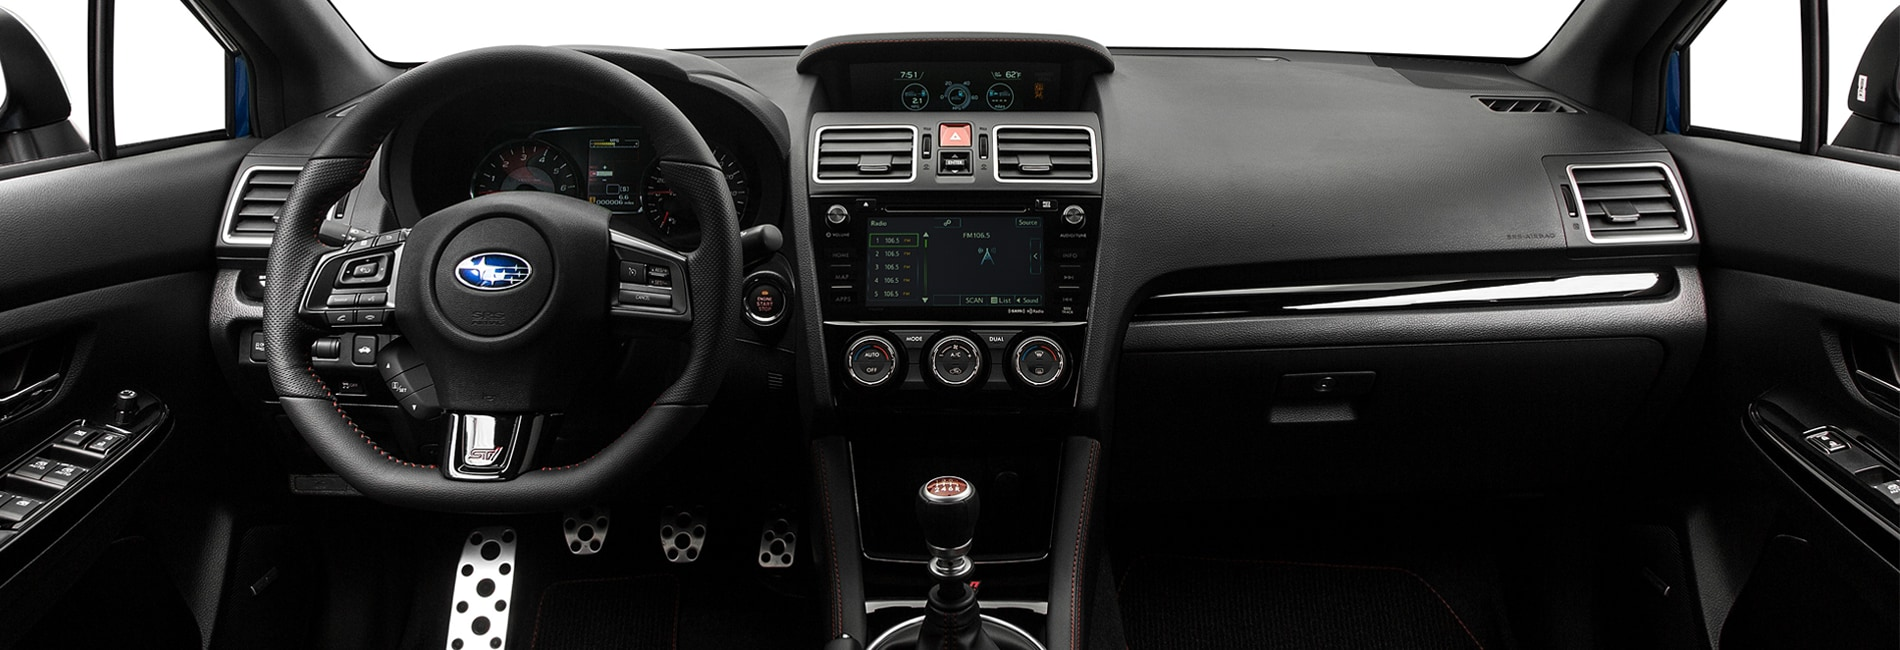 Subaru WRX Interior Vehicle Features